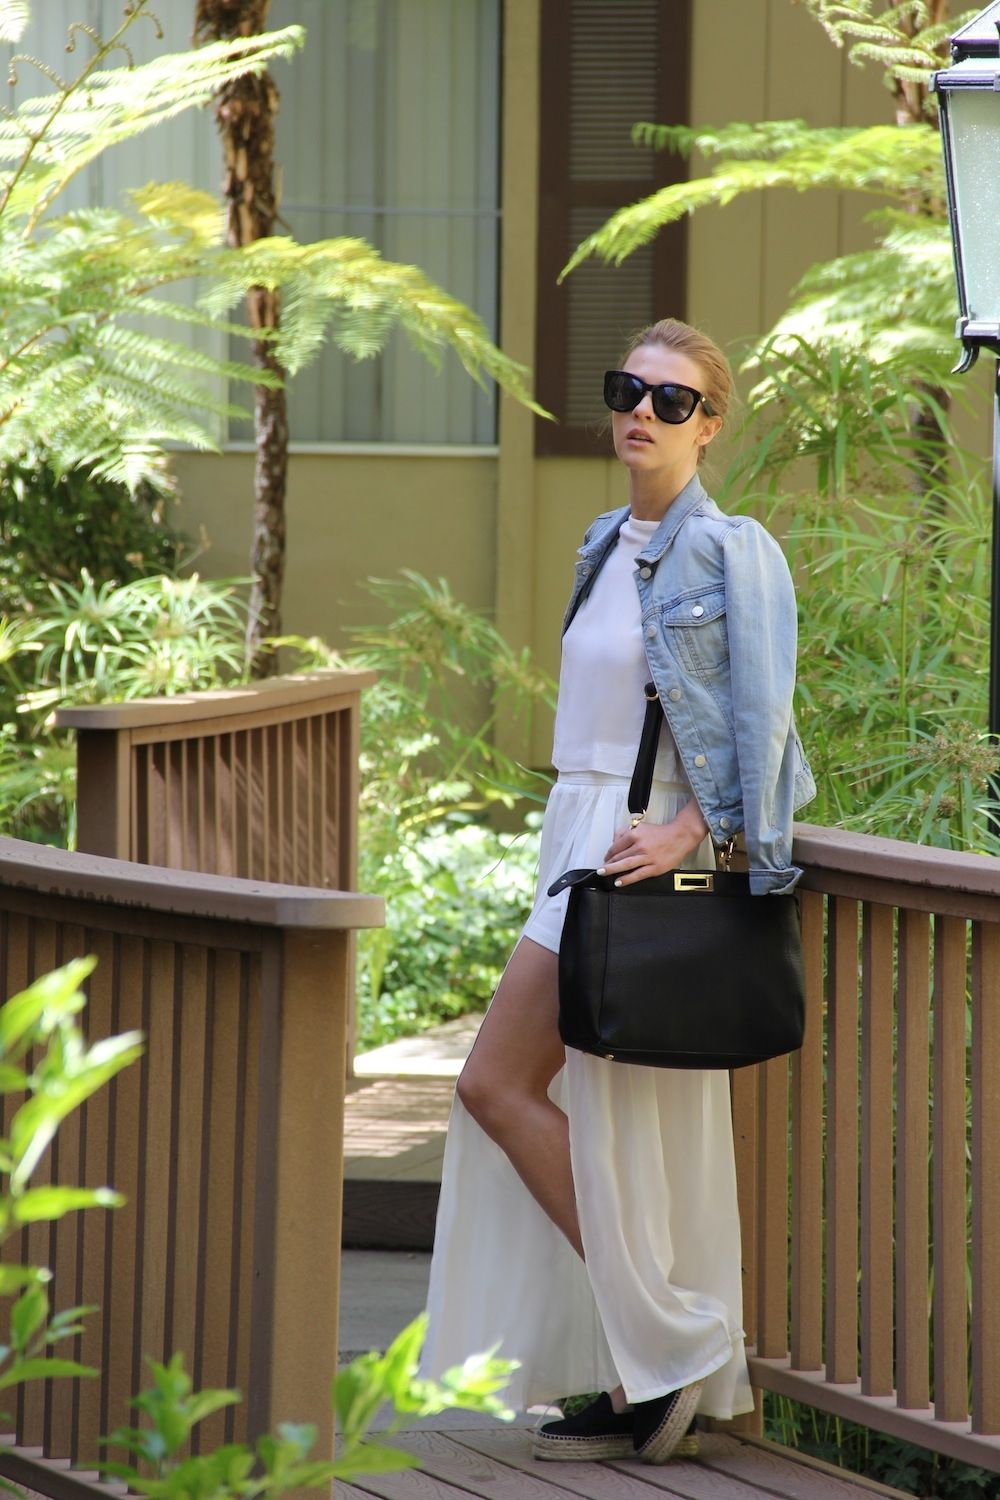 New post on the blog. Wearing maxi white skirt from @bechickcom and Anine Bing sunglasses.